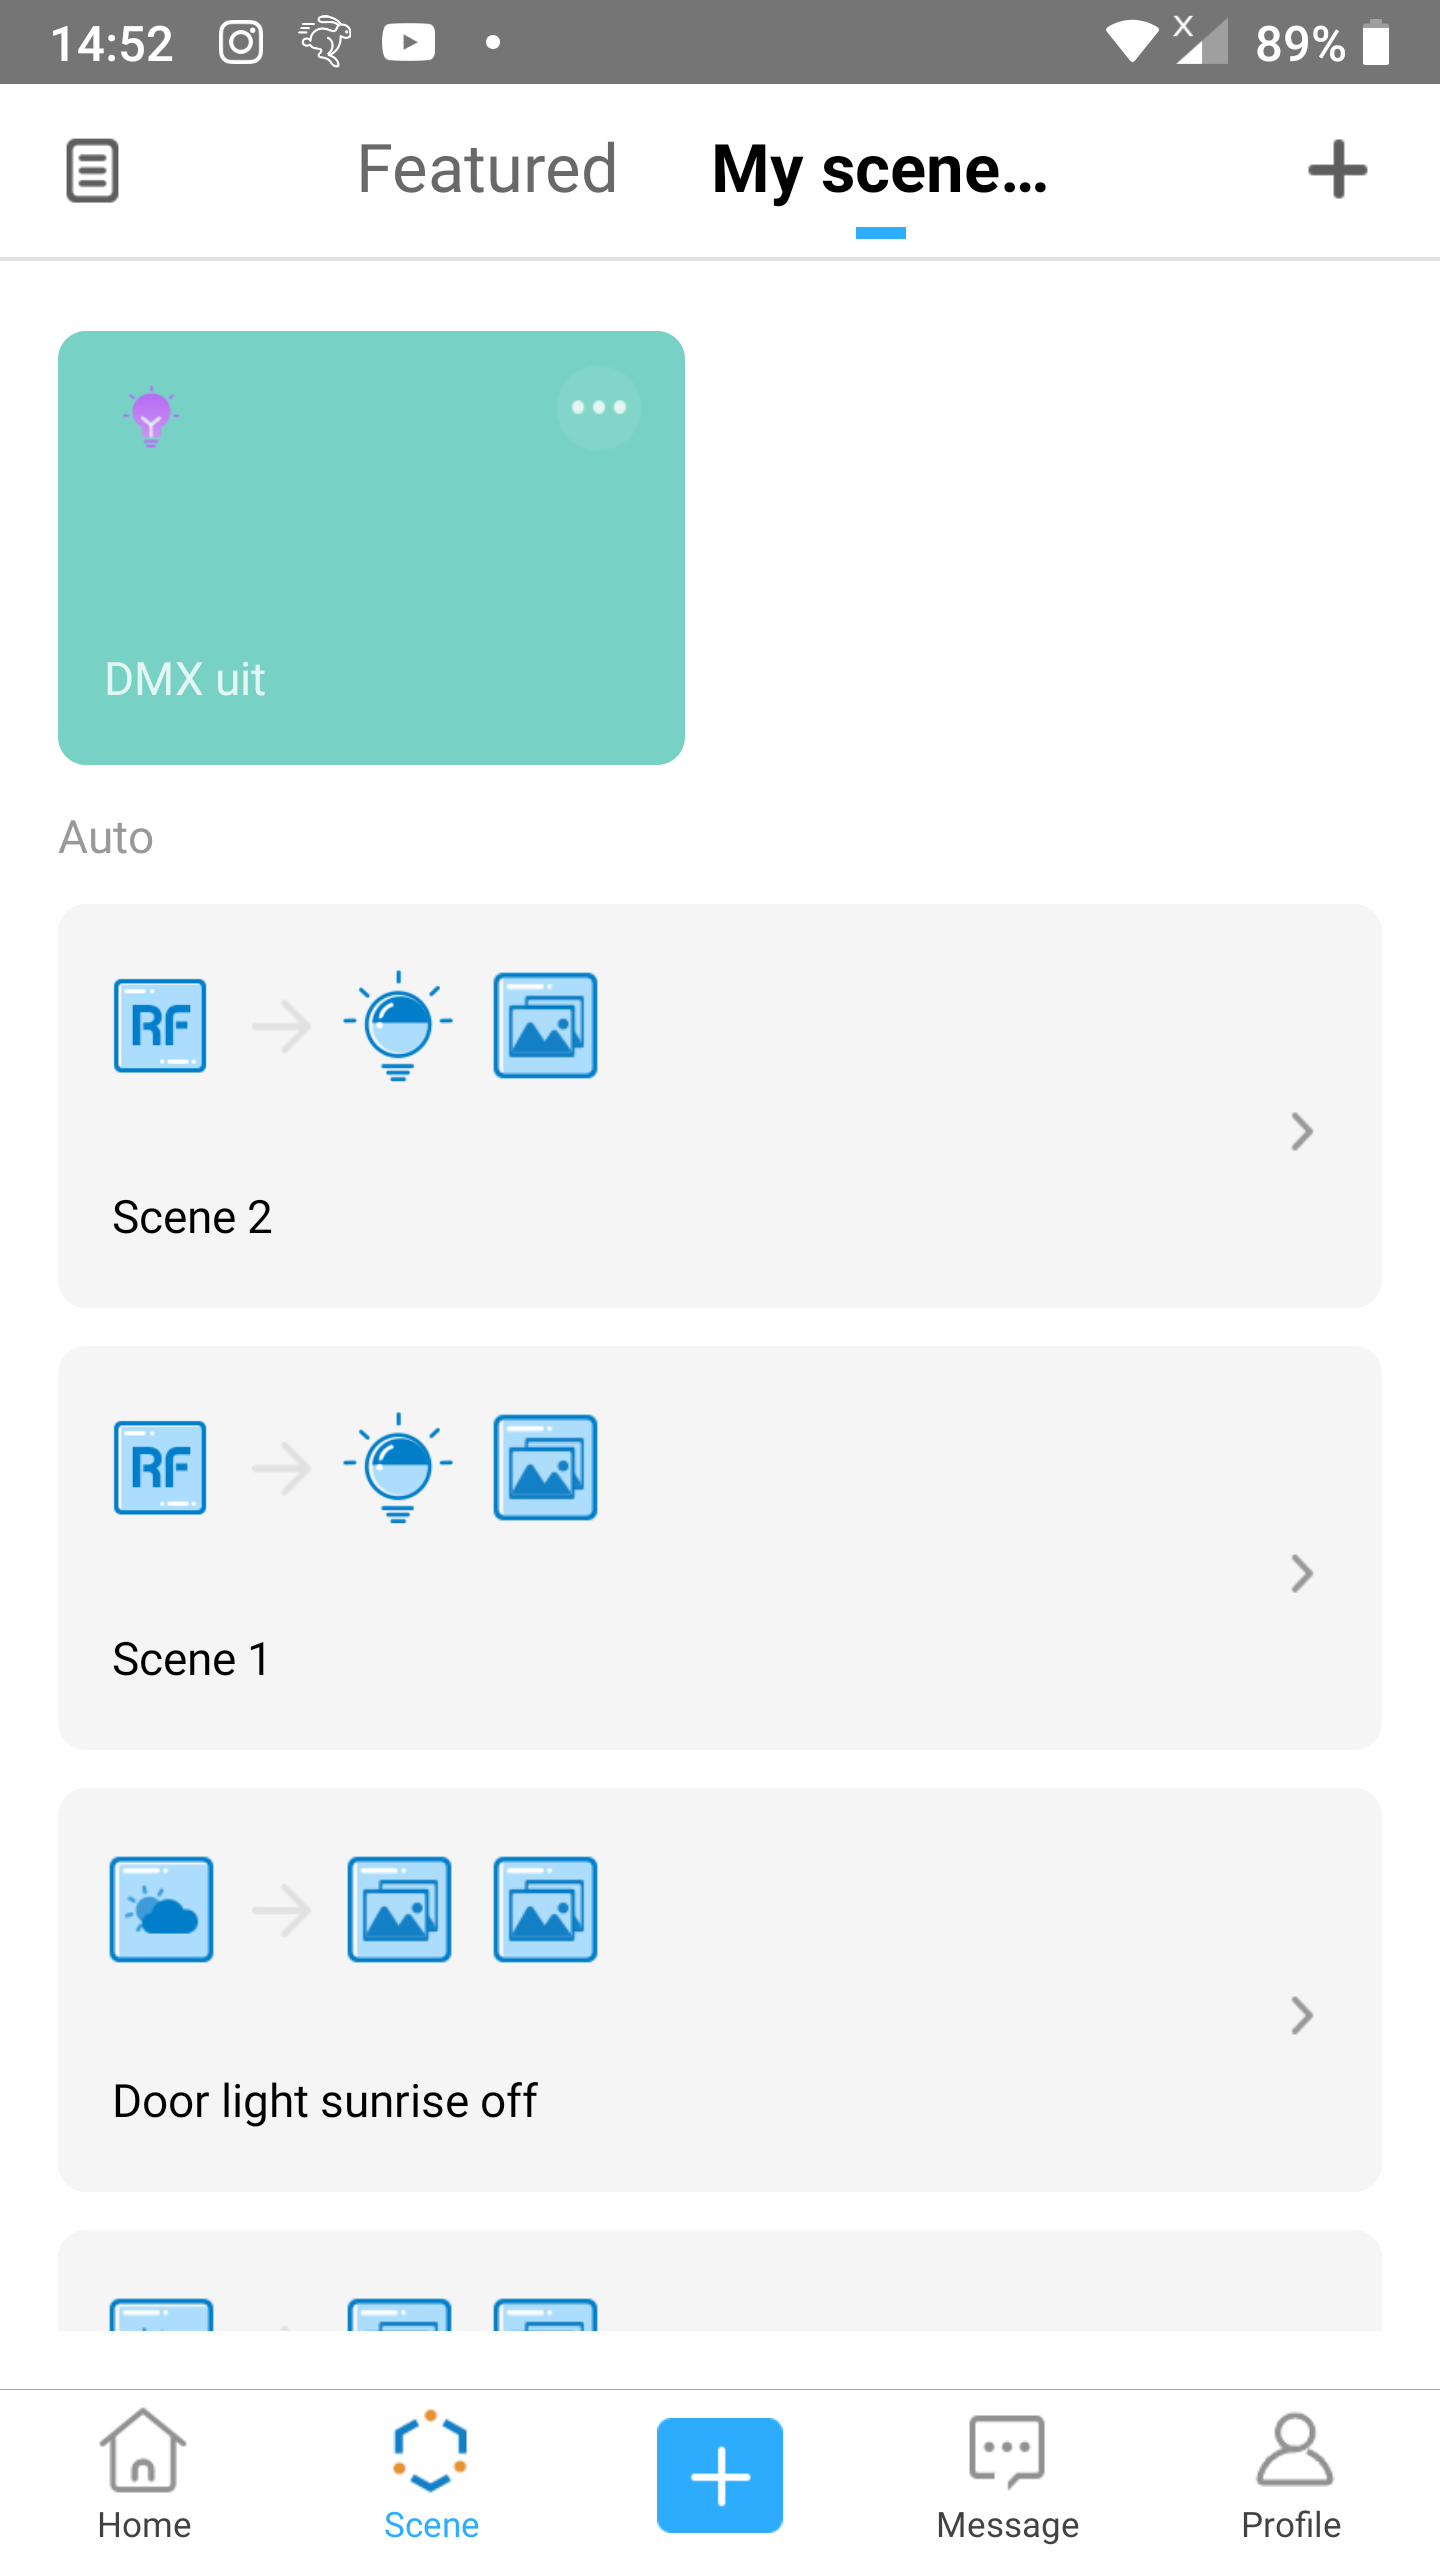 KB: 1-button toggle: Overview of auto scenes